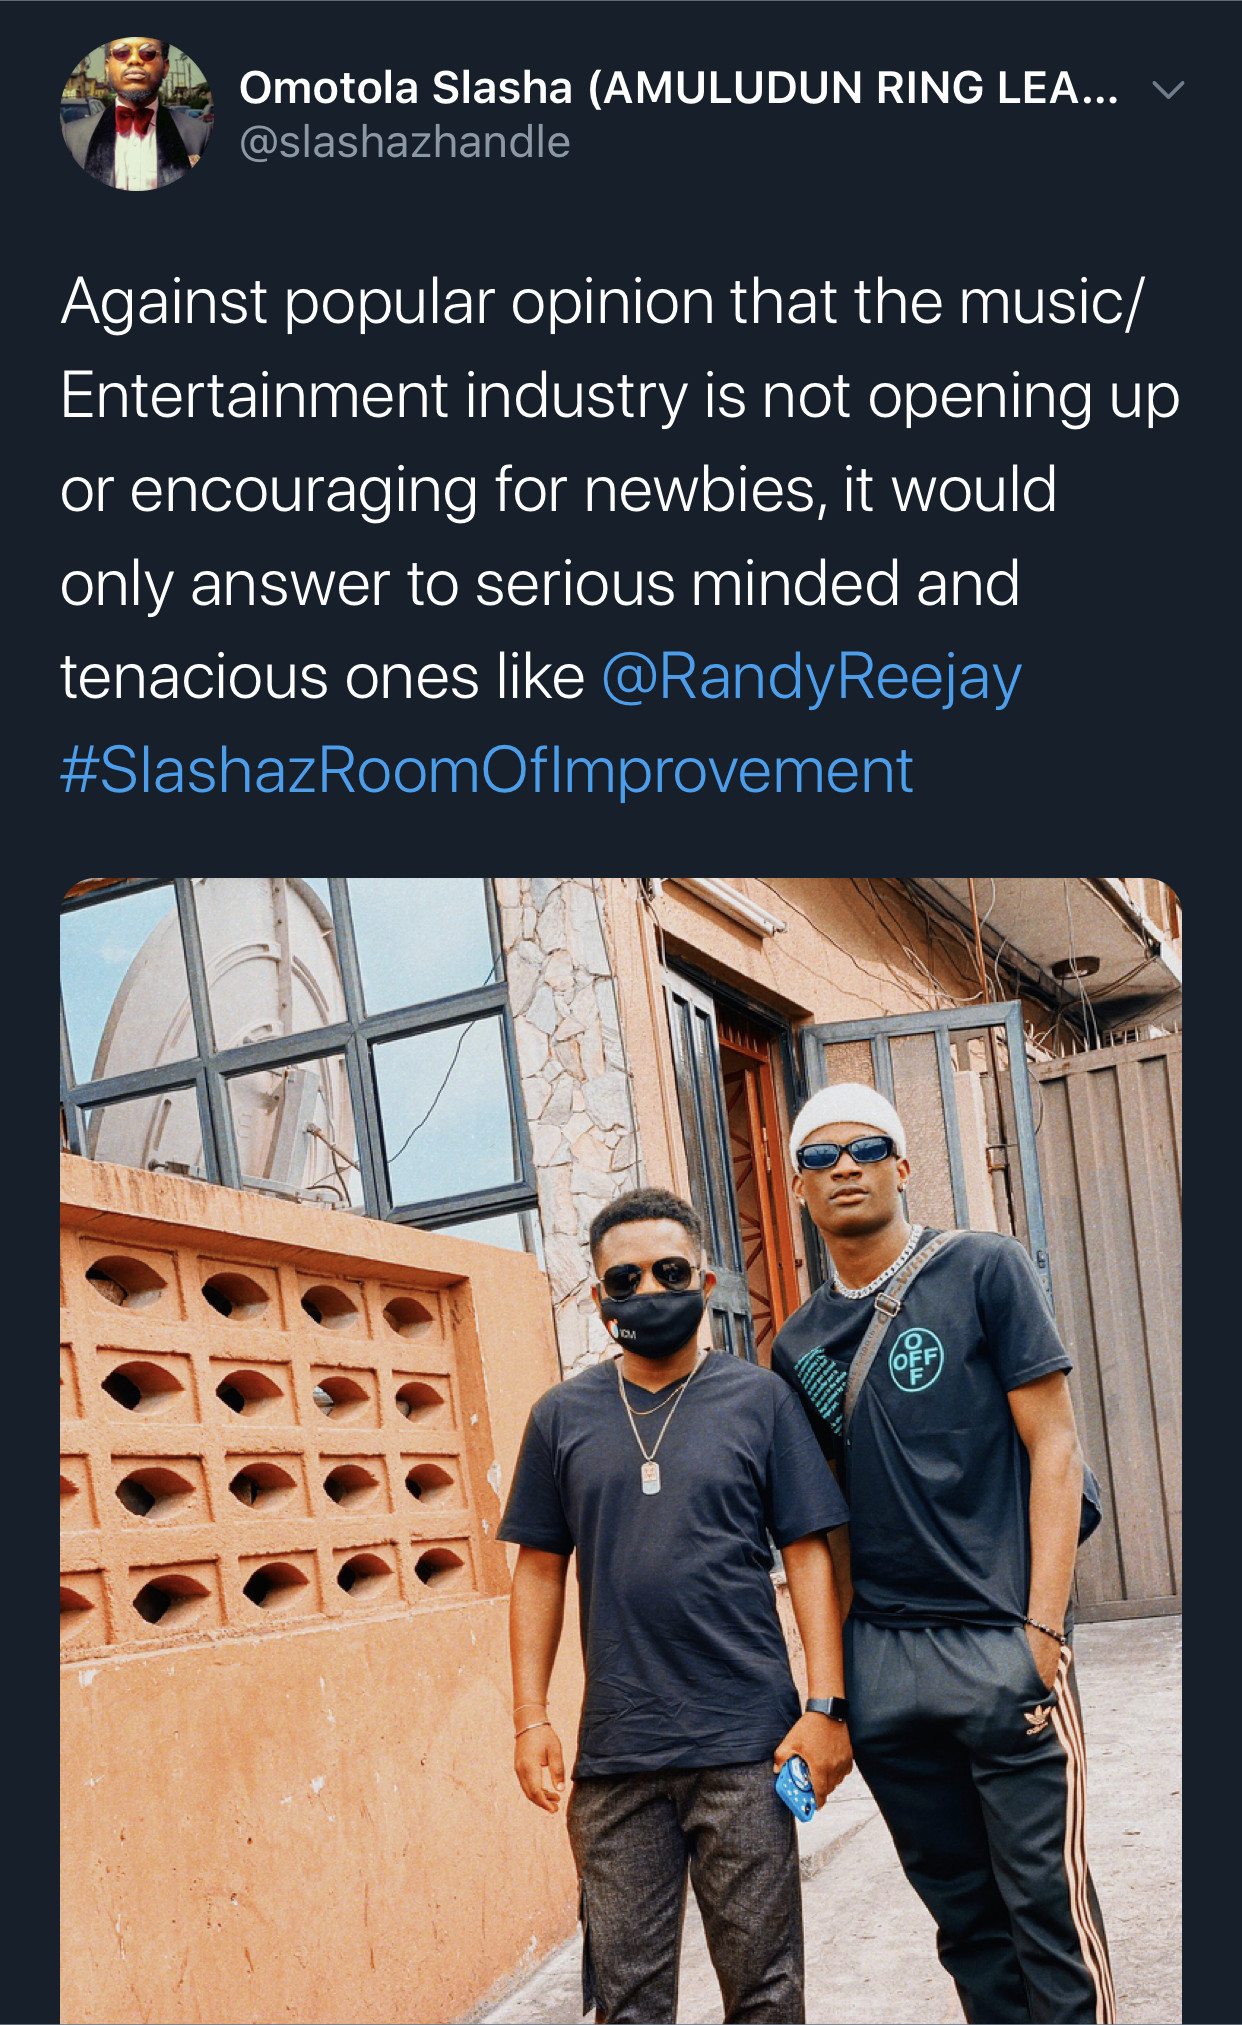 The industry would open up for the likes of Reejay says Pr Enthusiast Slasha